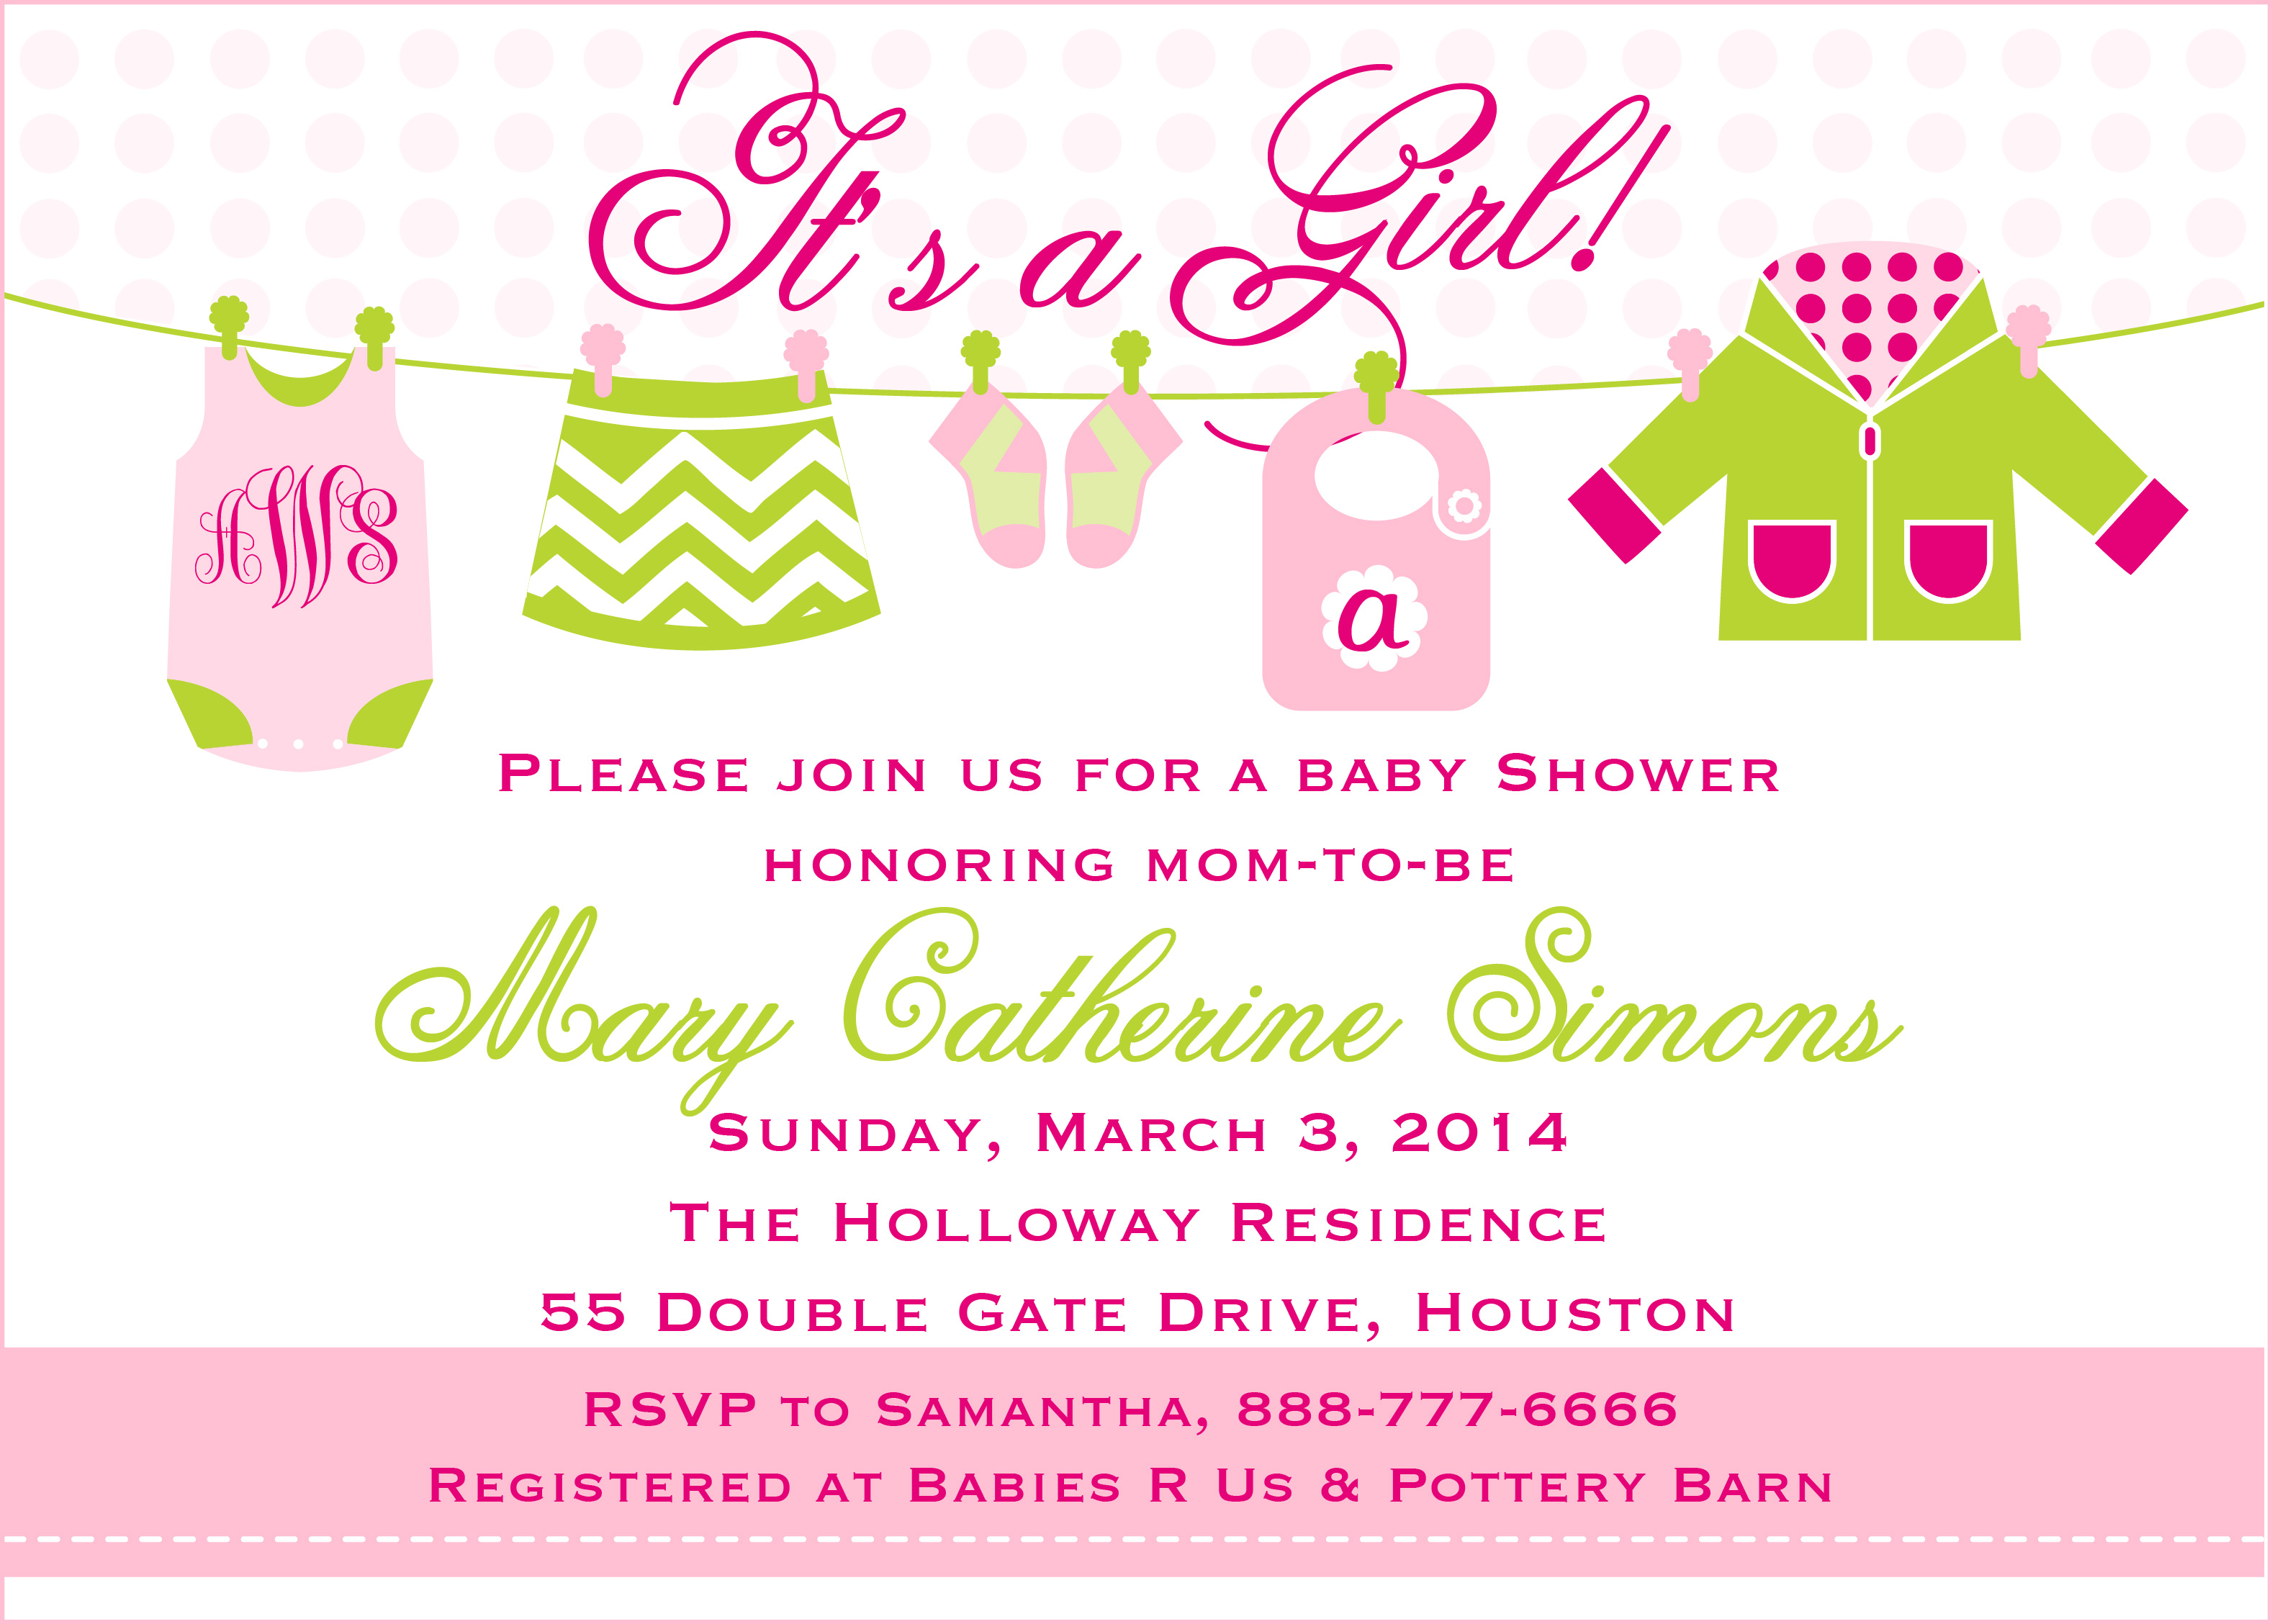 Baby Shower Archives - Page 4 of 5 - Pure Design Graphics